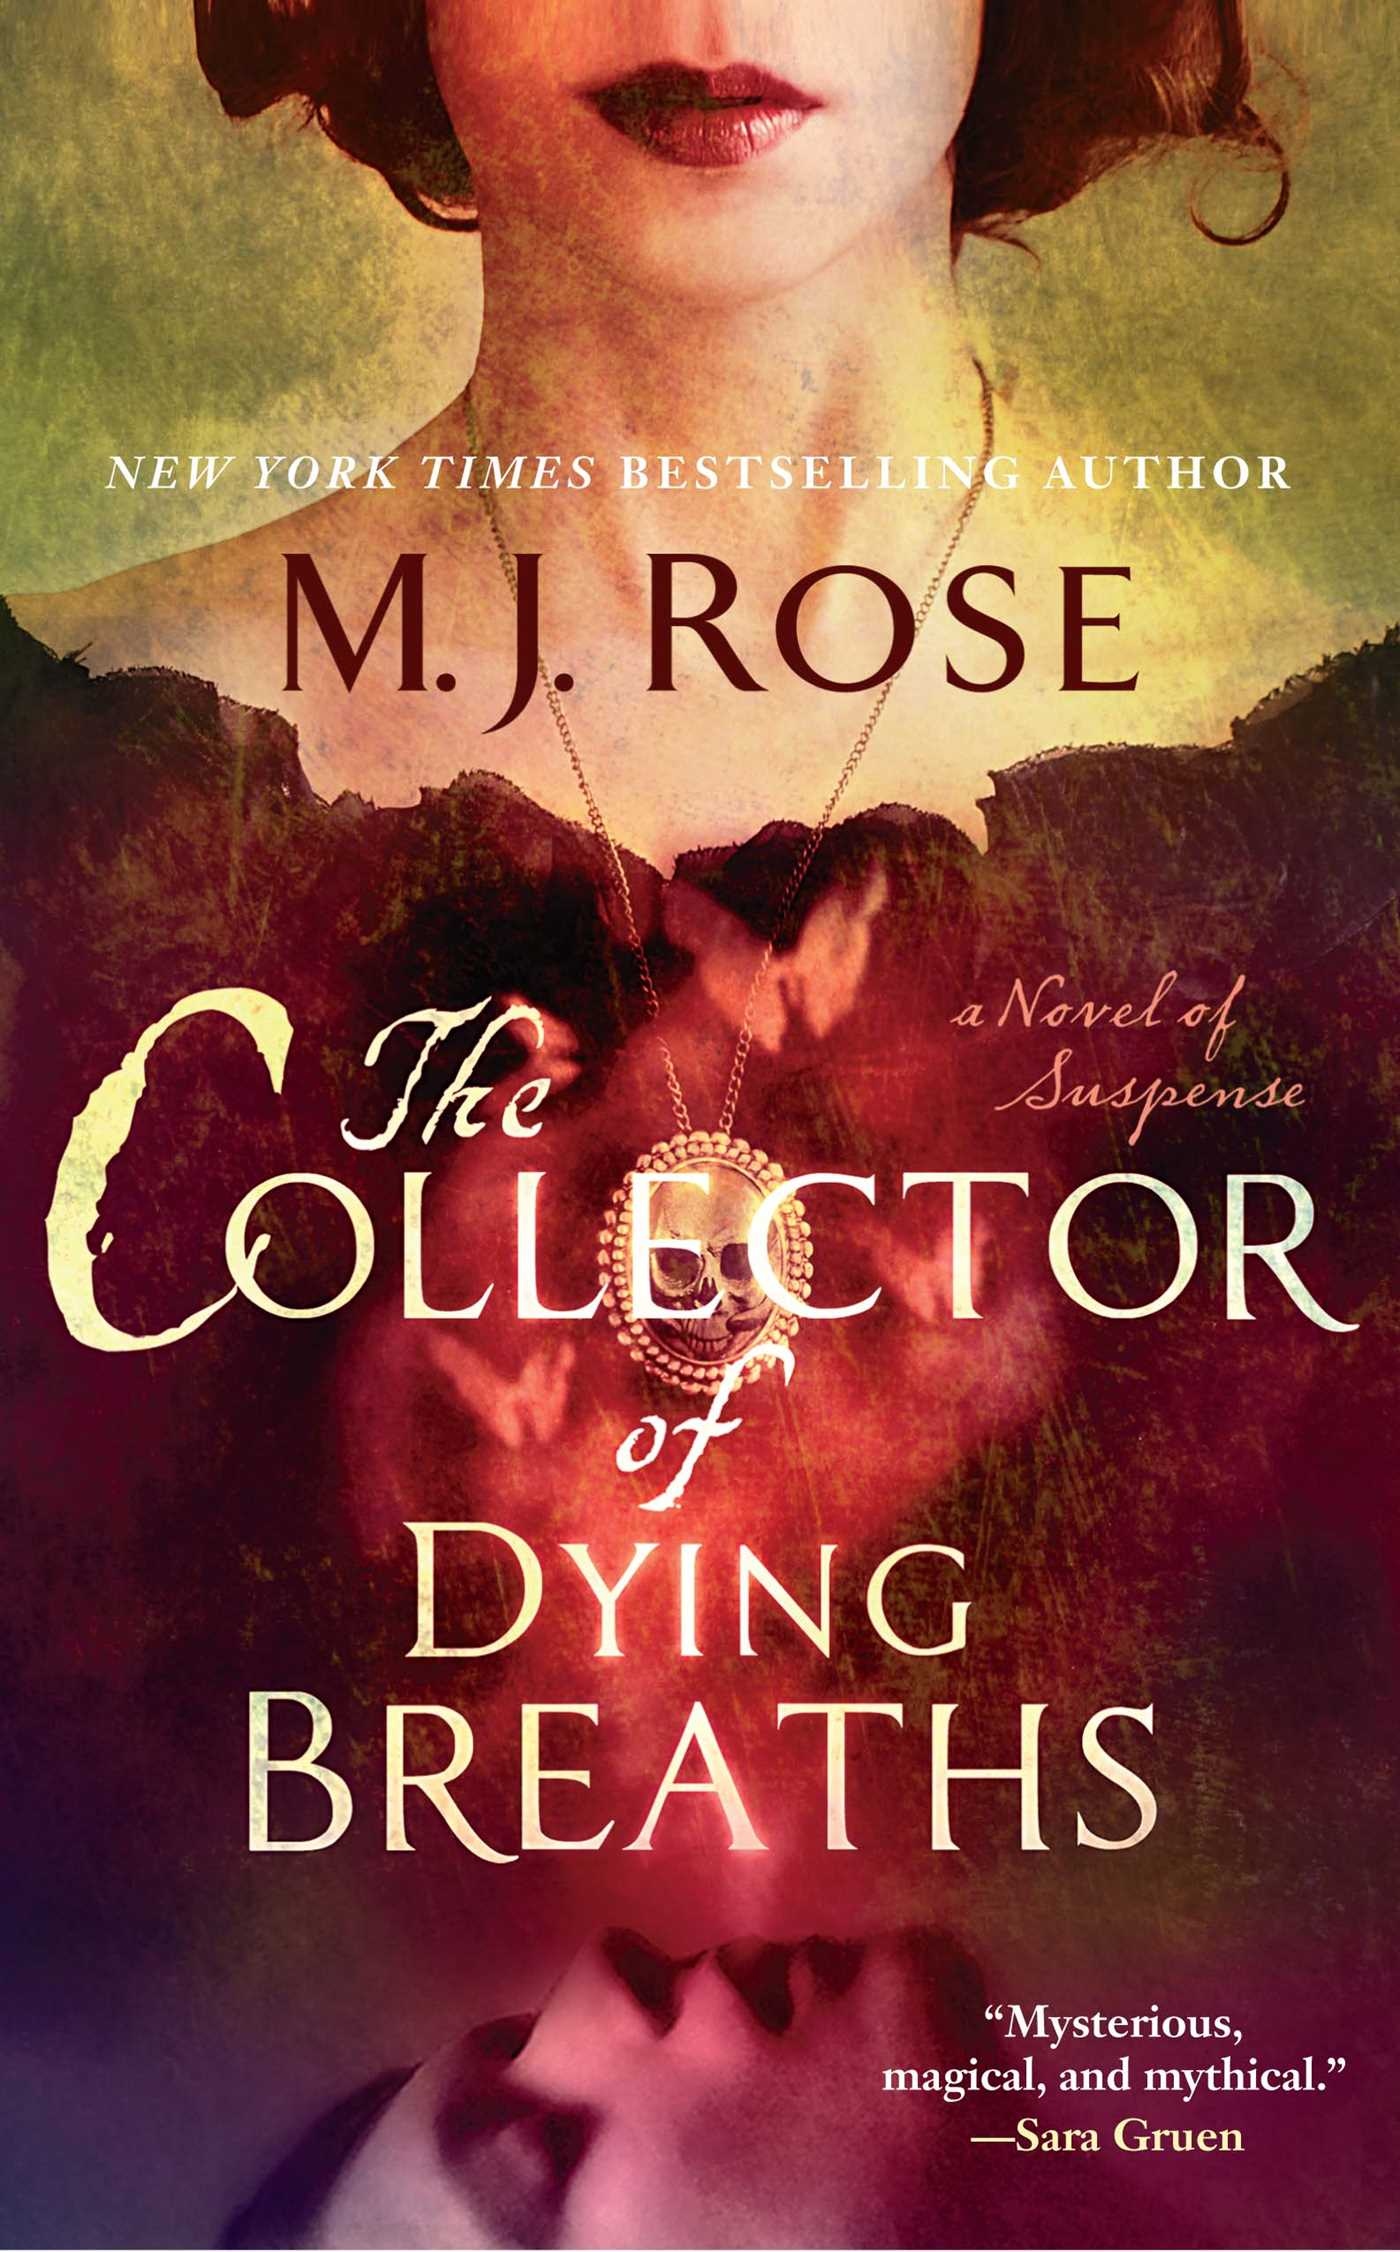 The collector of dying breaths 9781451621549 hr